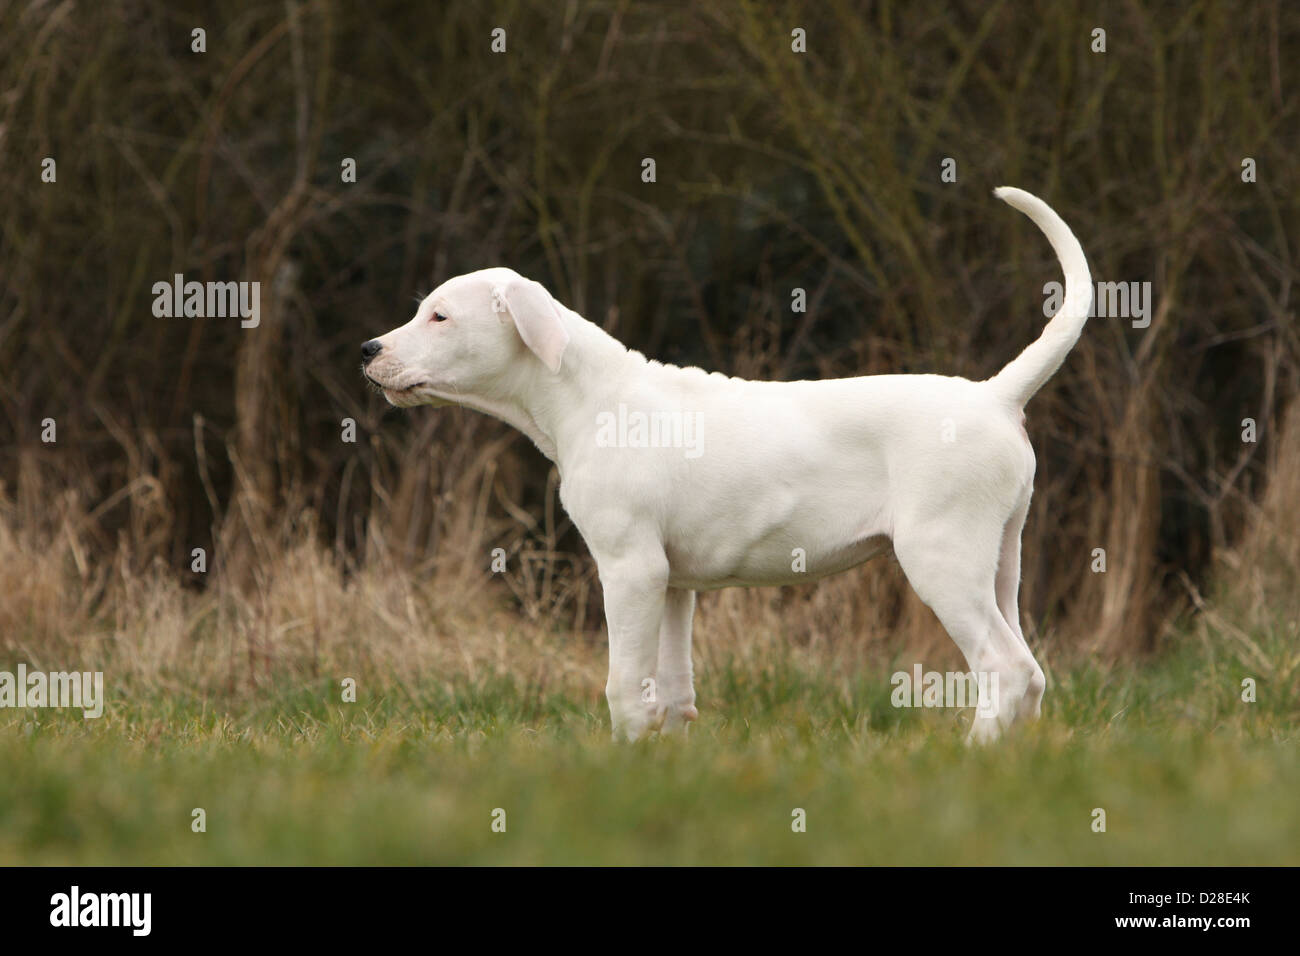 Chien Dogo Argentino / Dogue Argentin (oreilles naturelles) puppy profil permanent Photo Stock